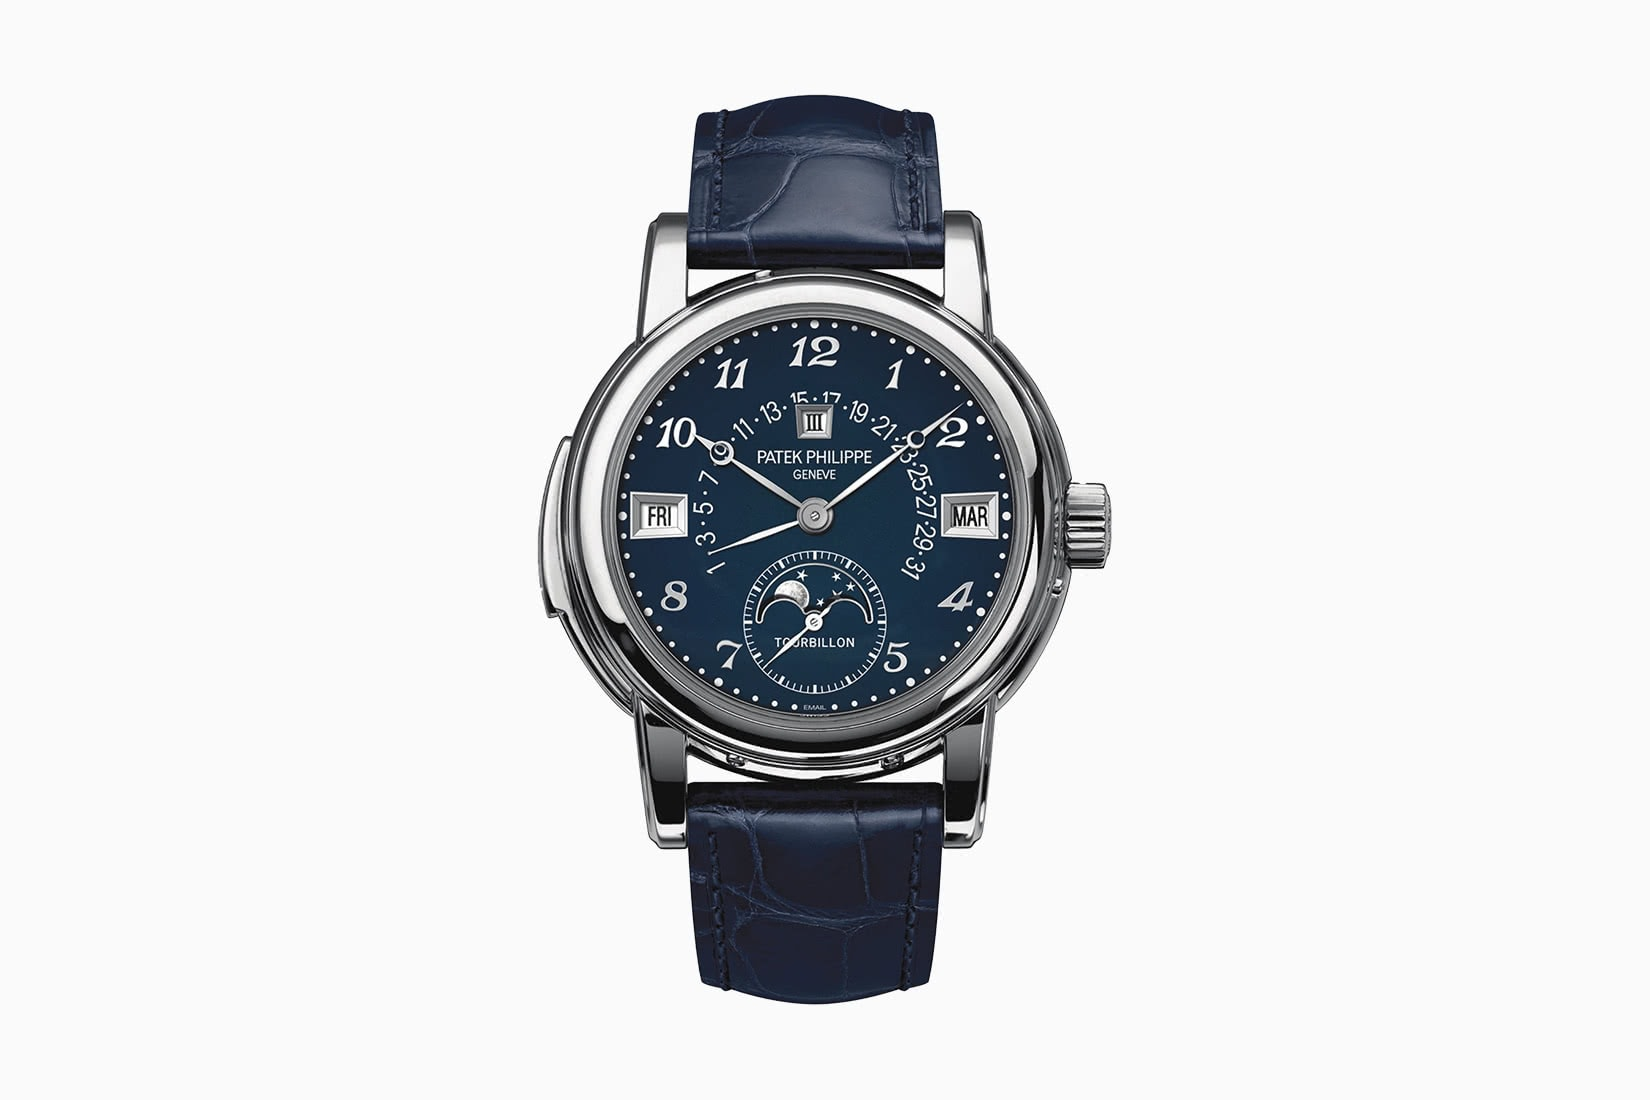 most expensive watches patek philippe stainless steel ref 5016A 010 - Luxe Digital